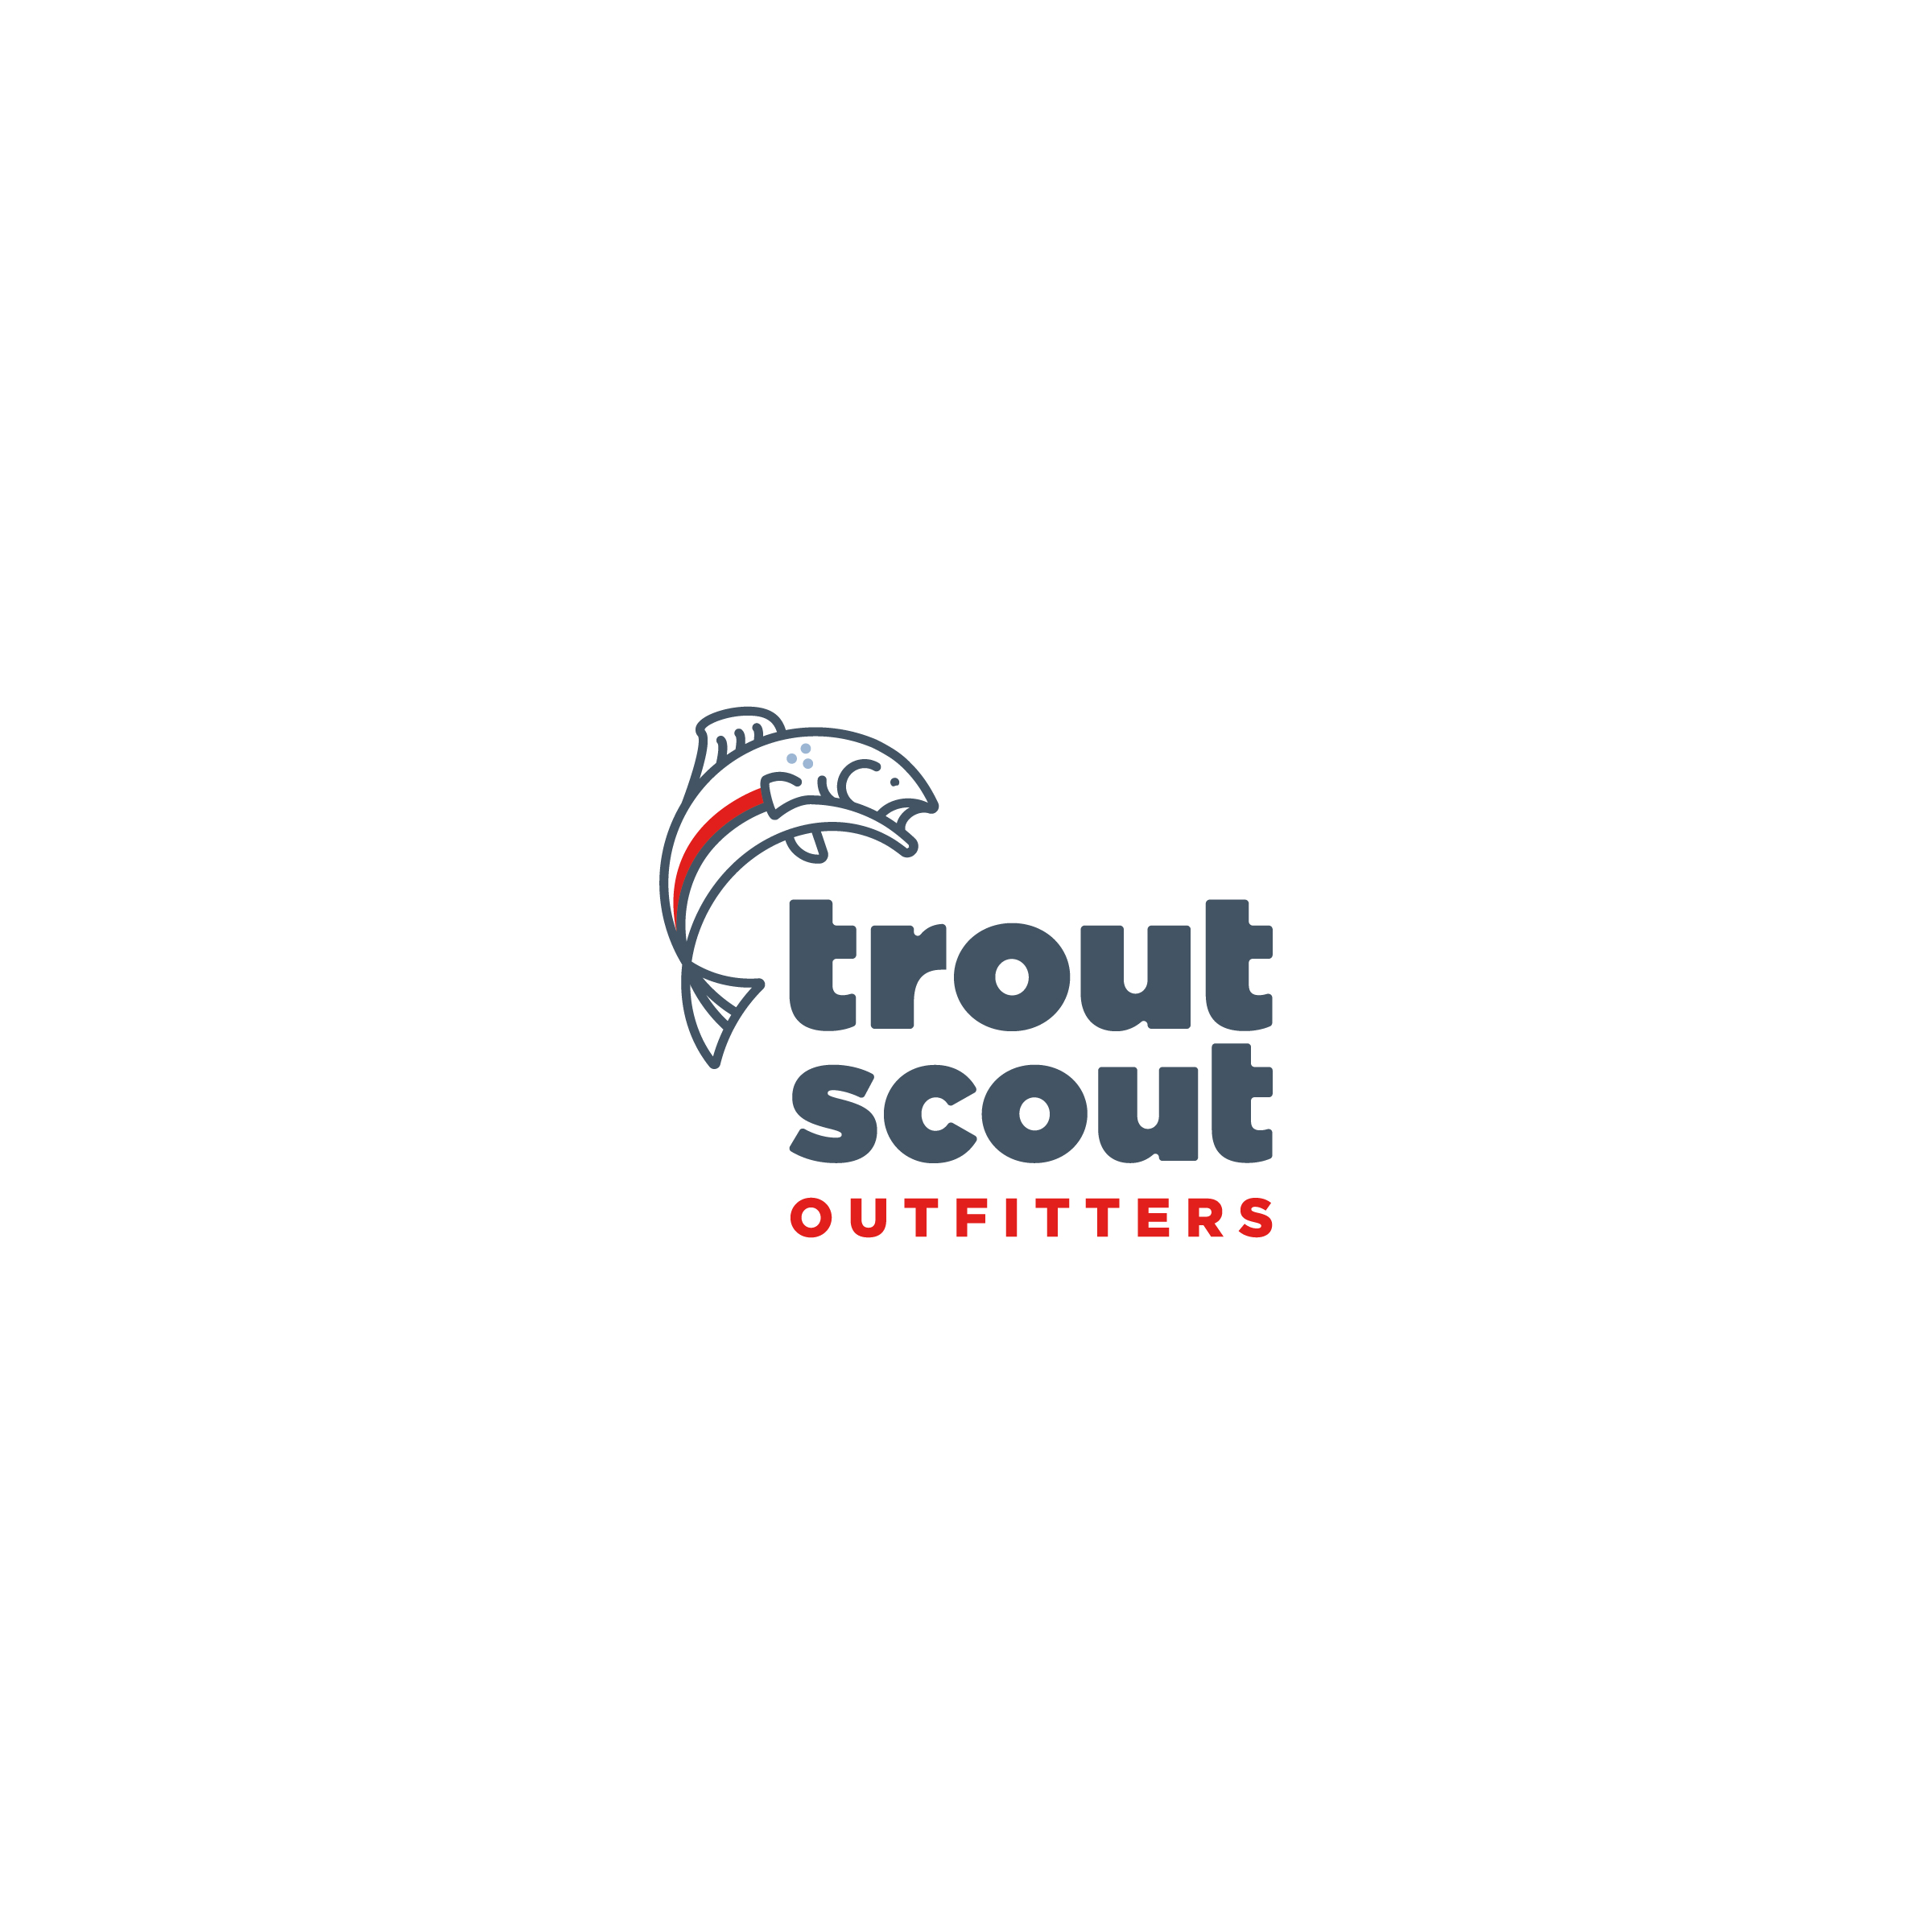 TroutScoutOutfitters_Bow_3Clr_Vert.jpg